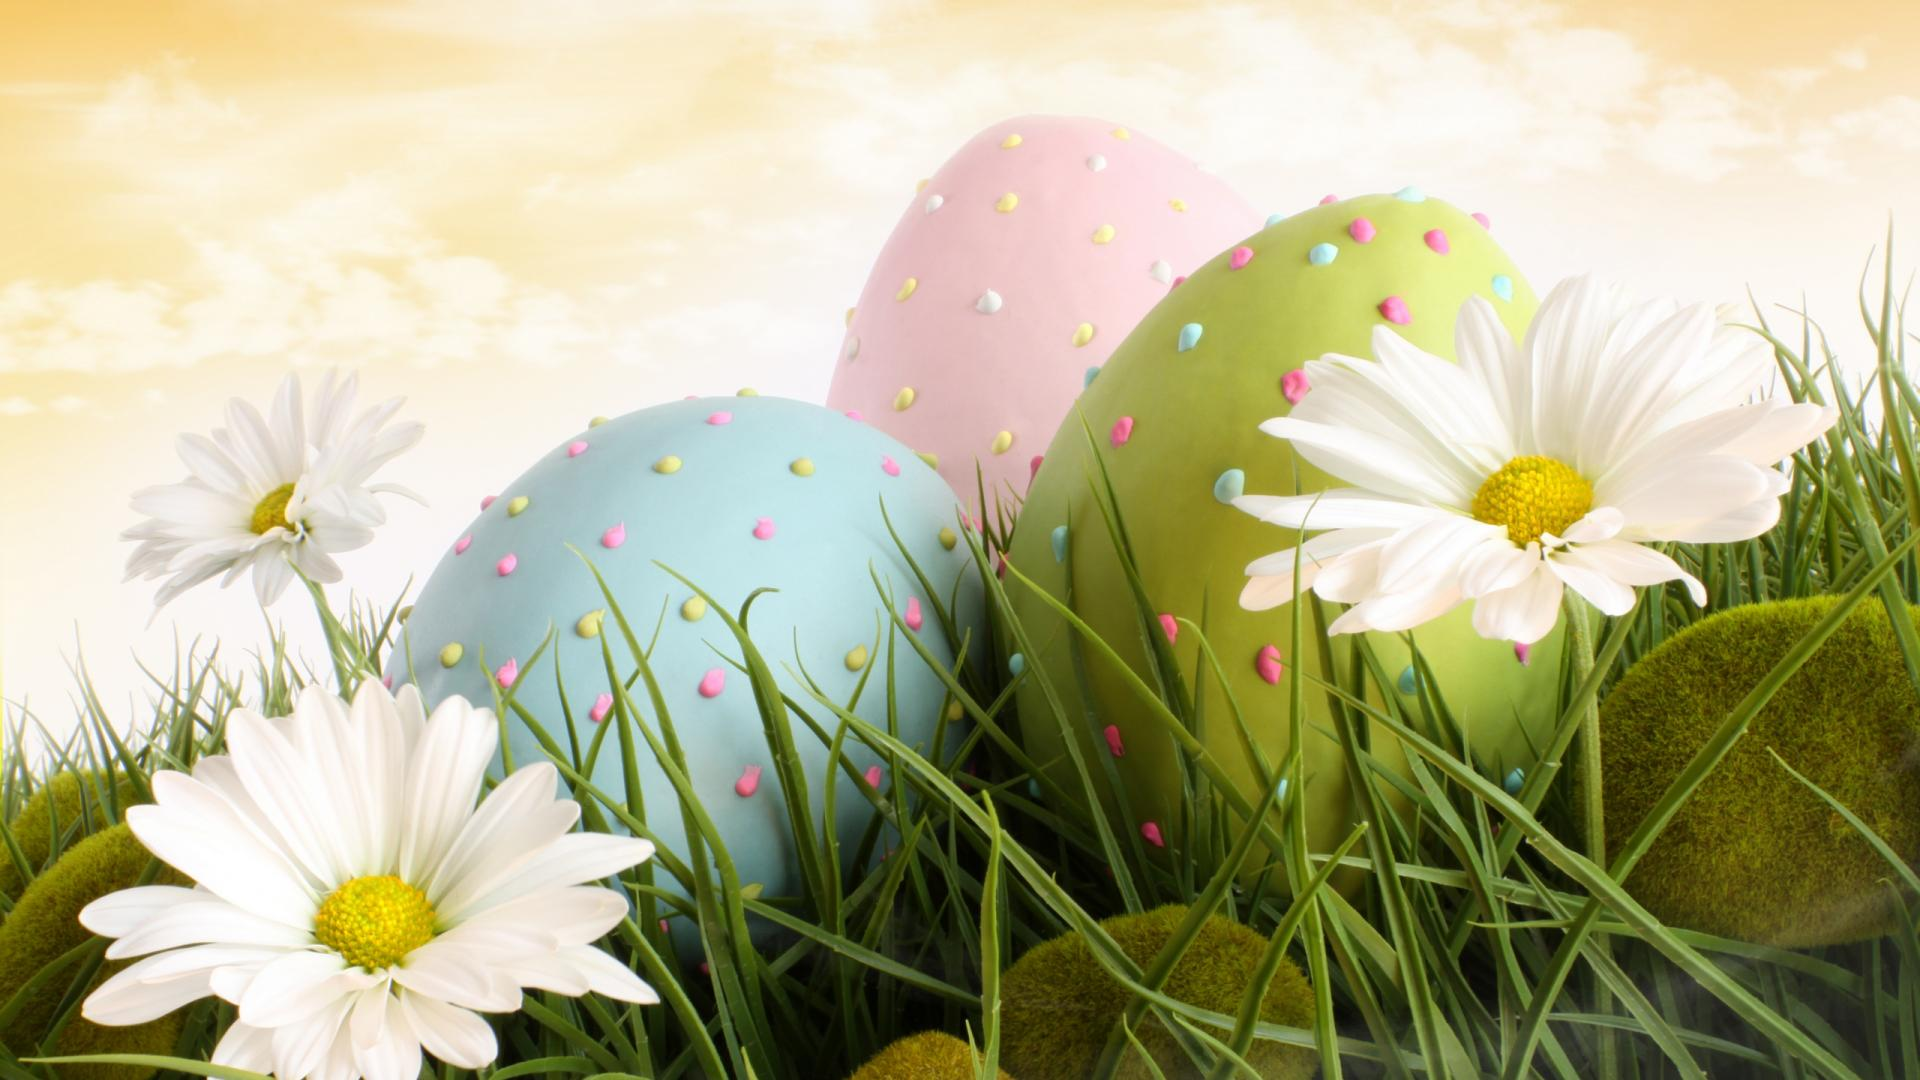 Happy Easter HD Wallpaper Background Image 1920x1080 ID 1920x1080